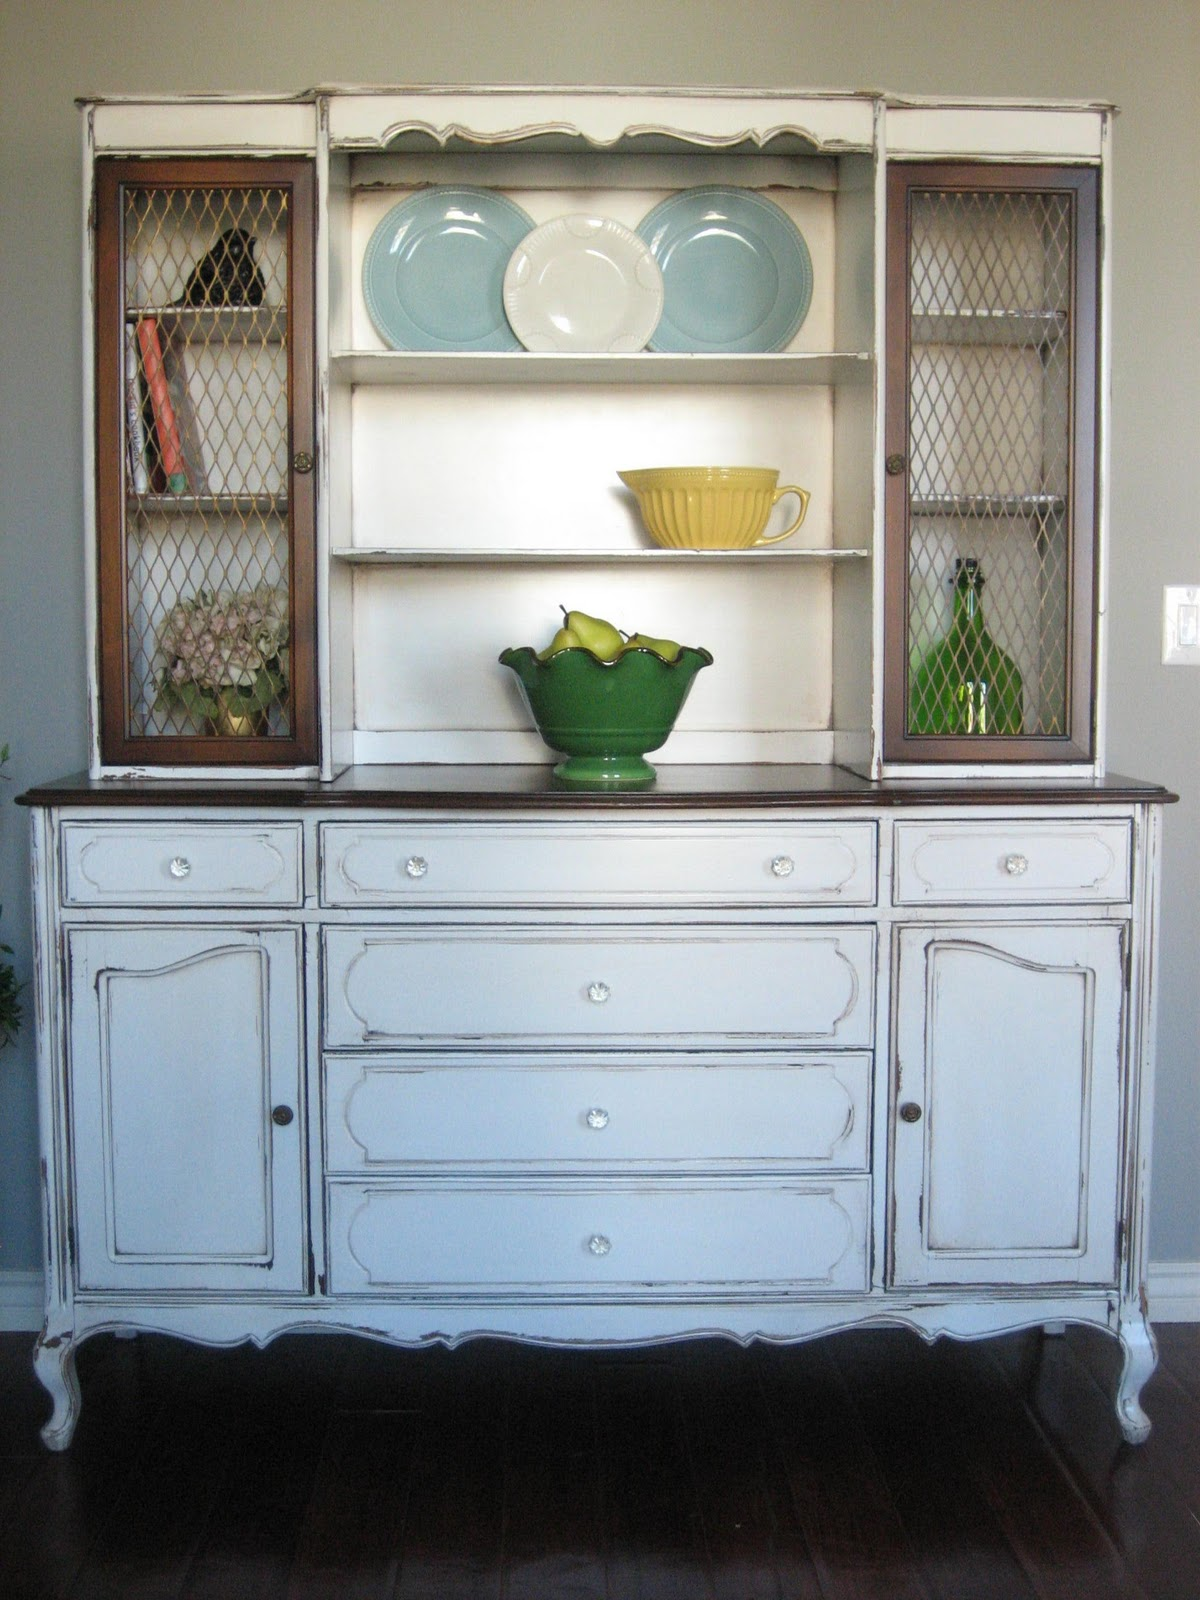 apple valley kitchen cabinets stainless steel appliance set european paint finishes: ~ rustic french farmhouse hutch